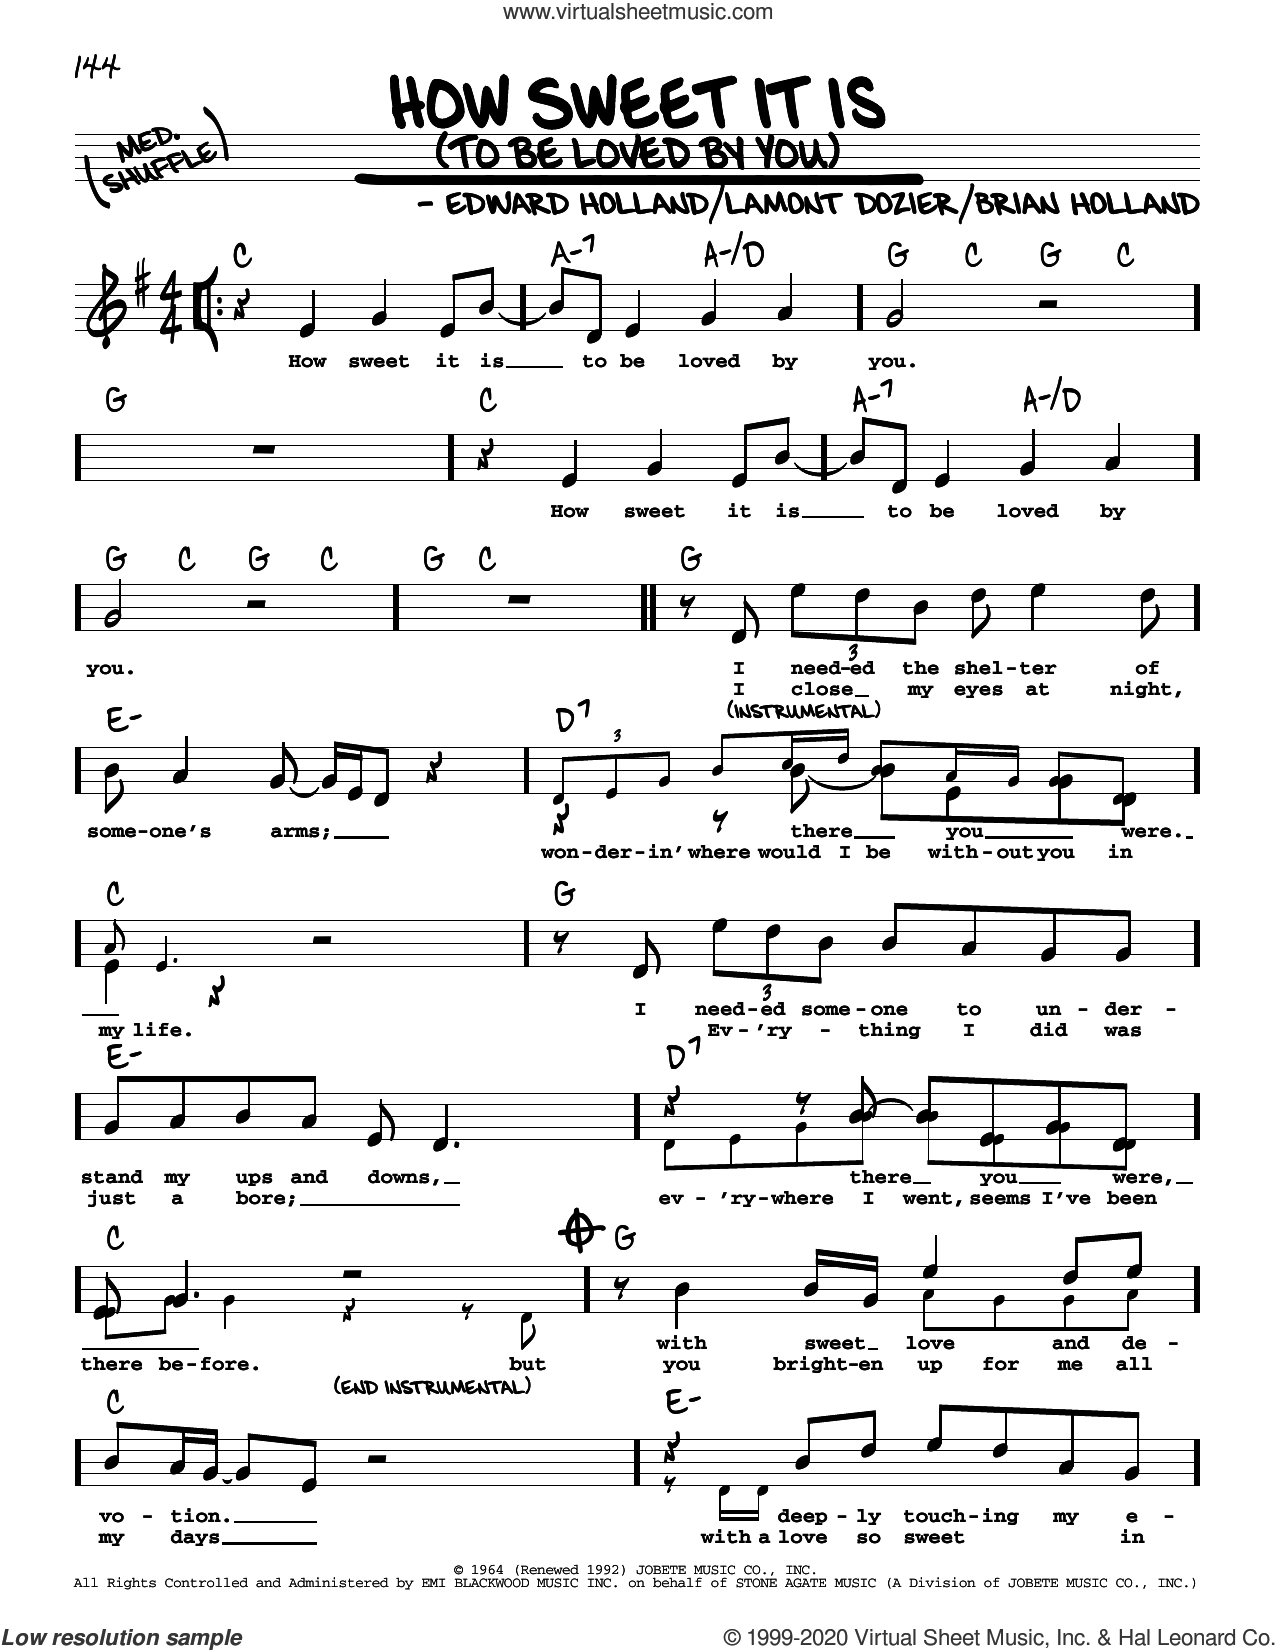 How Sweet It Is (To Be Loved By You) (High Voice) sheet music for voice and other instruments (real book with lyrics) by Marvin Gaye, James Taylor, Brian Holland, Eddie Holland and Lamont Dozier, intermediate skill level